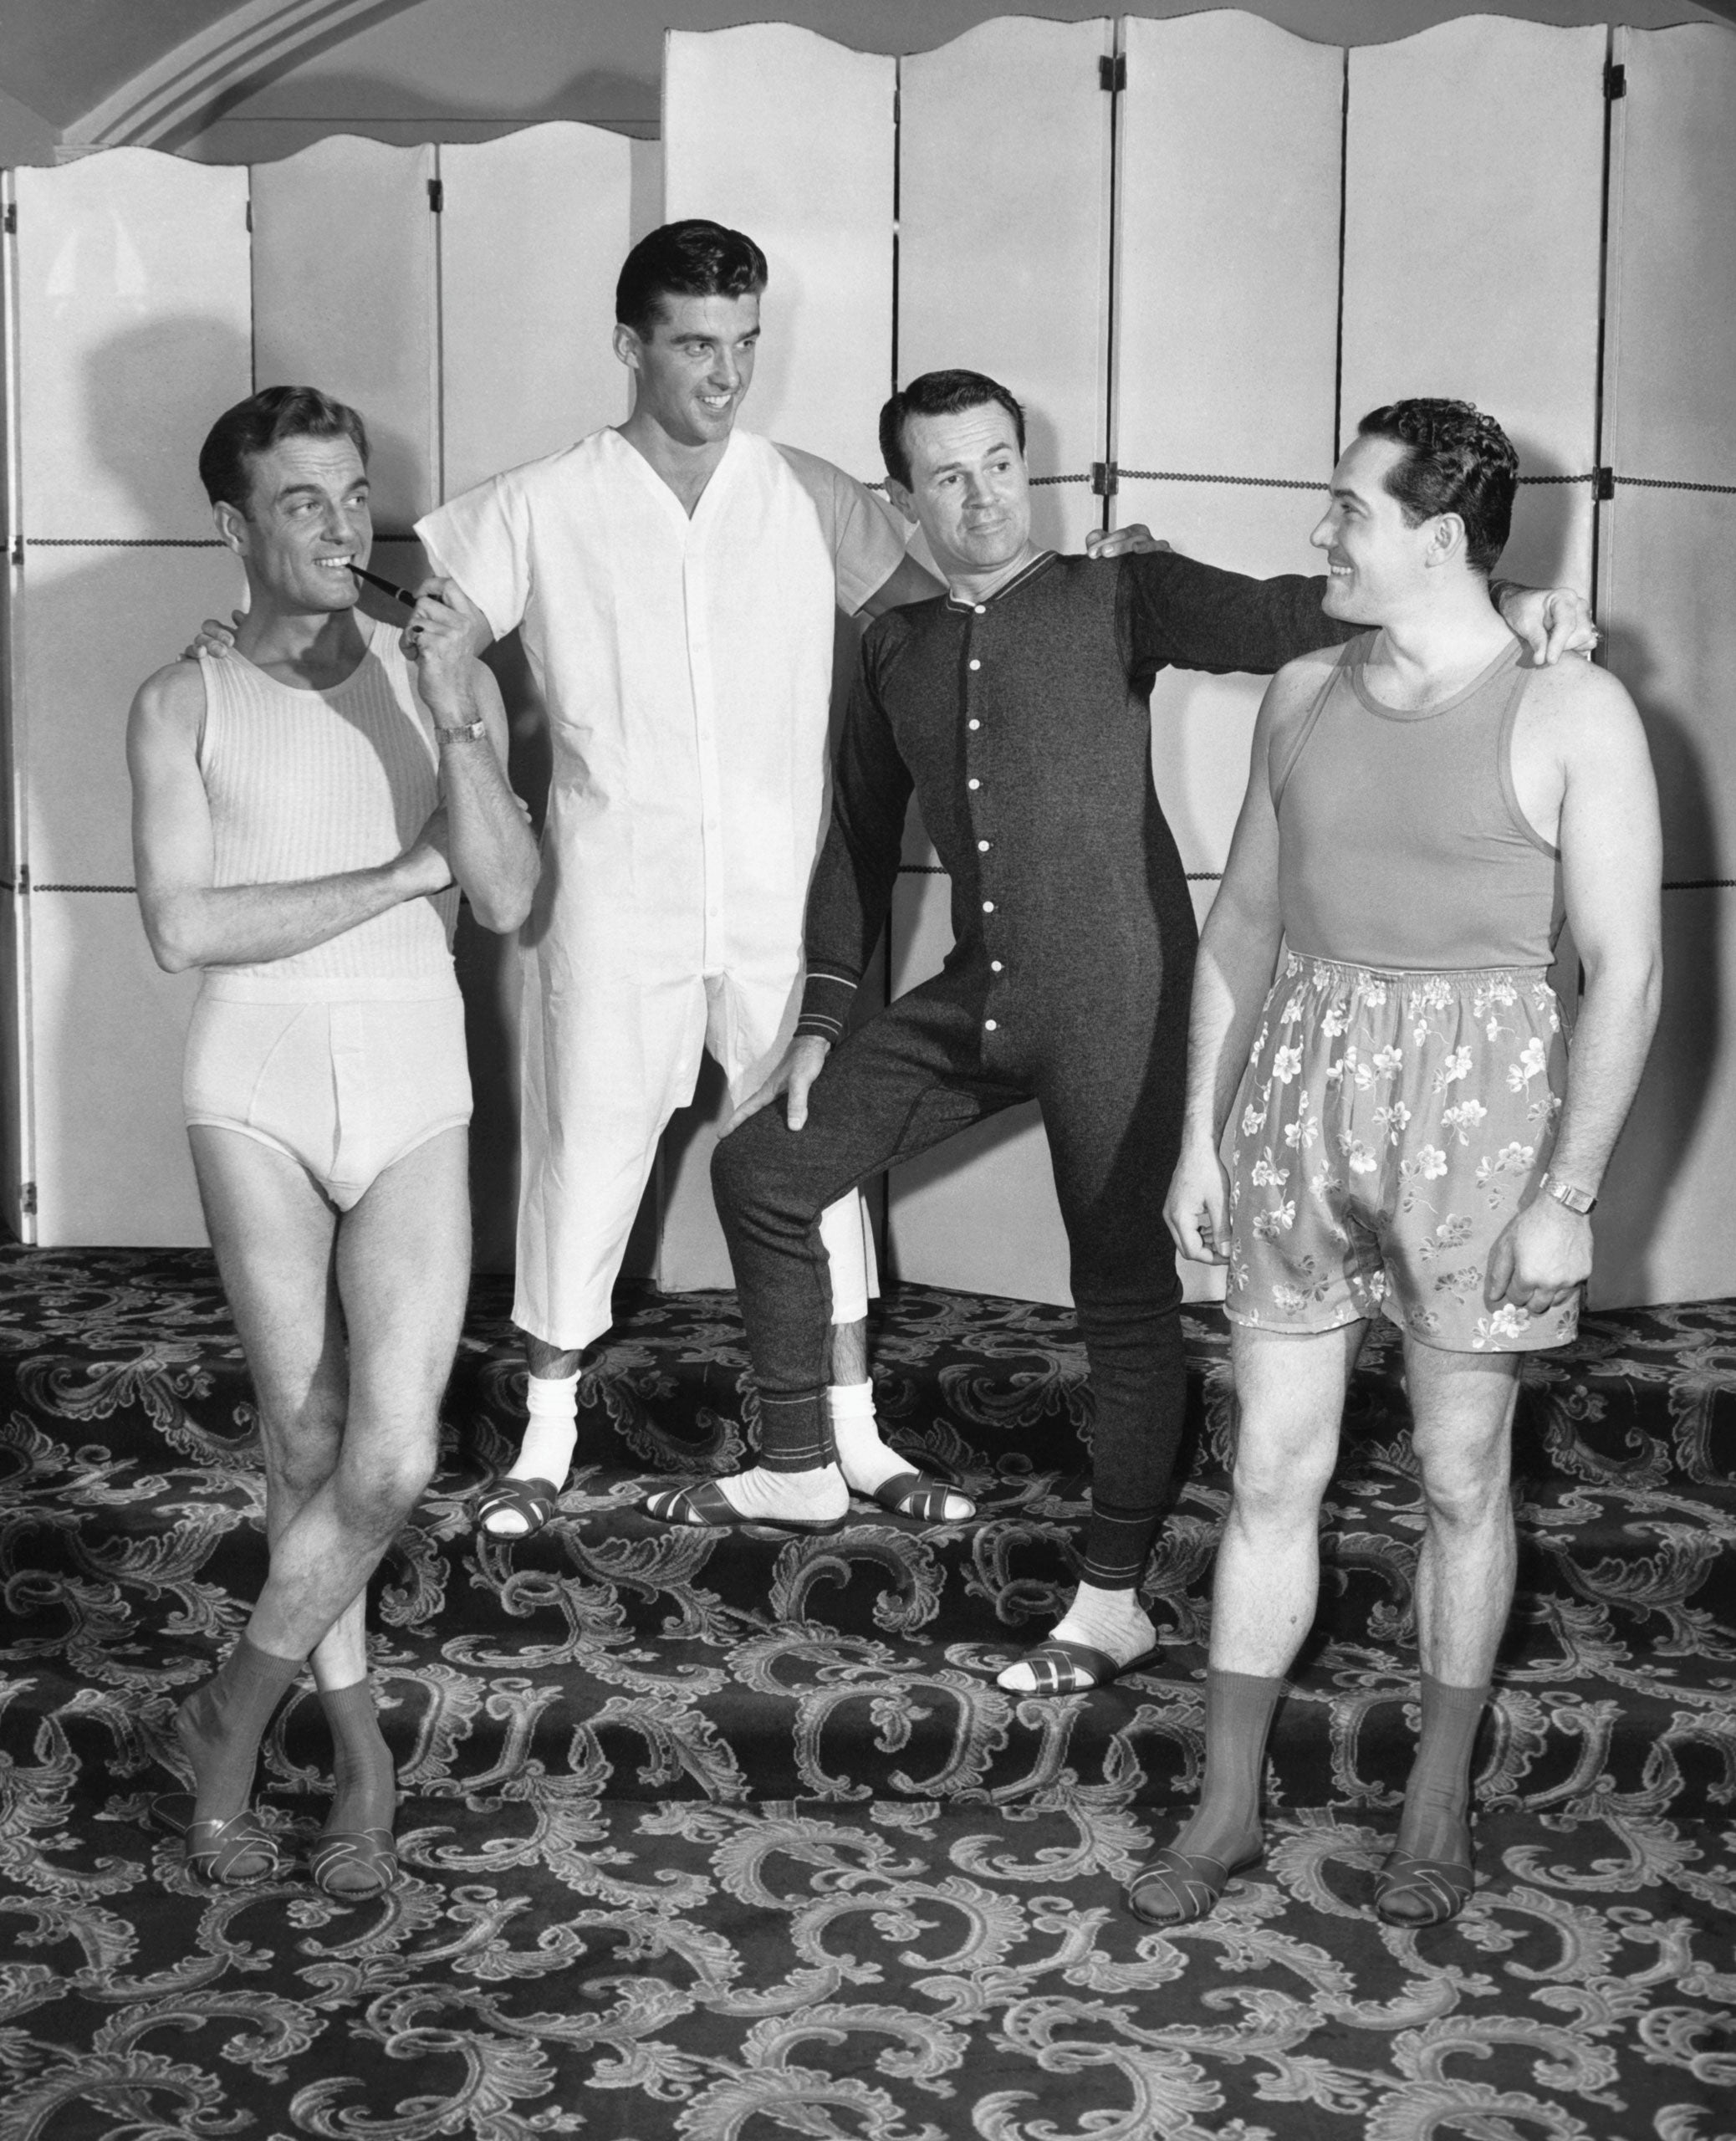 The History of Underwear: A Brief Flash